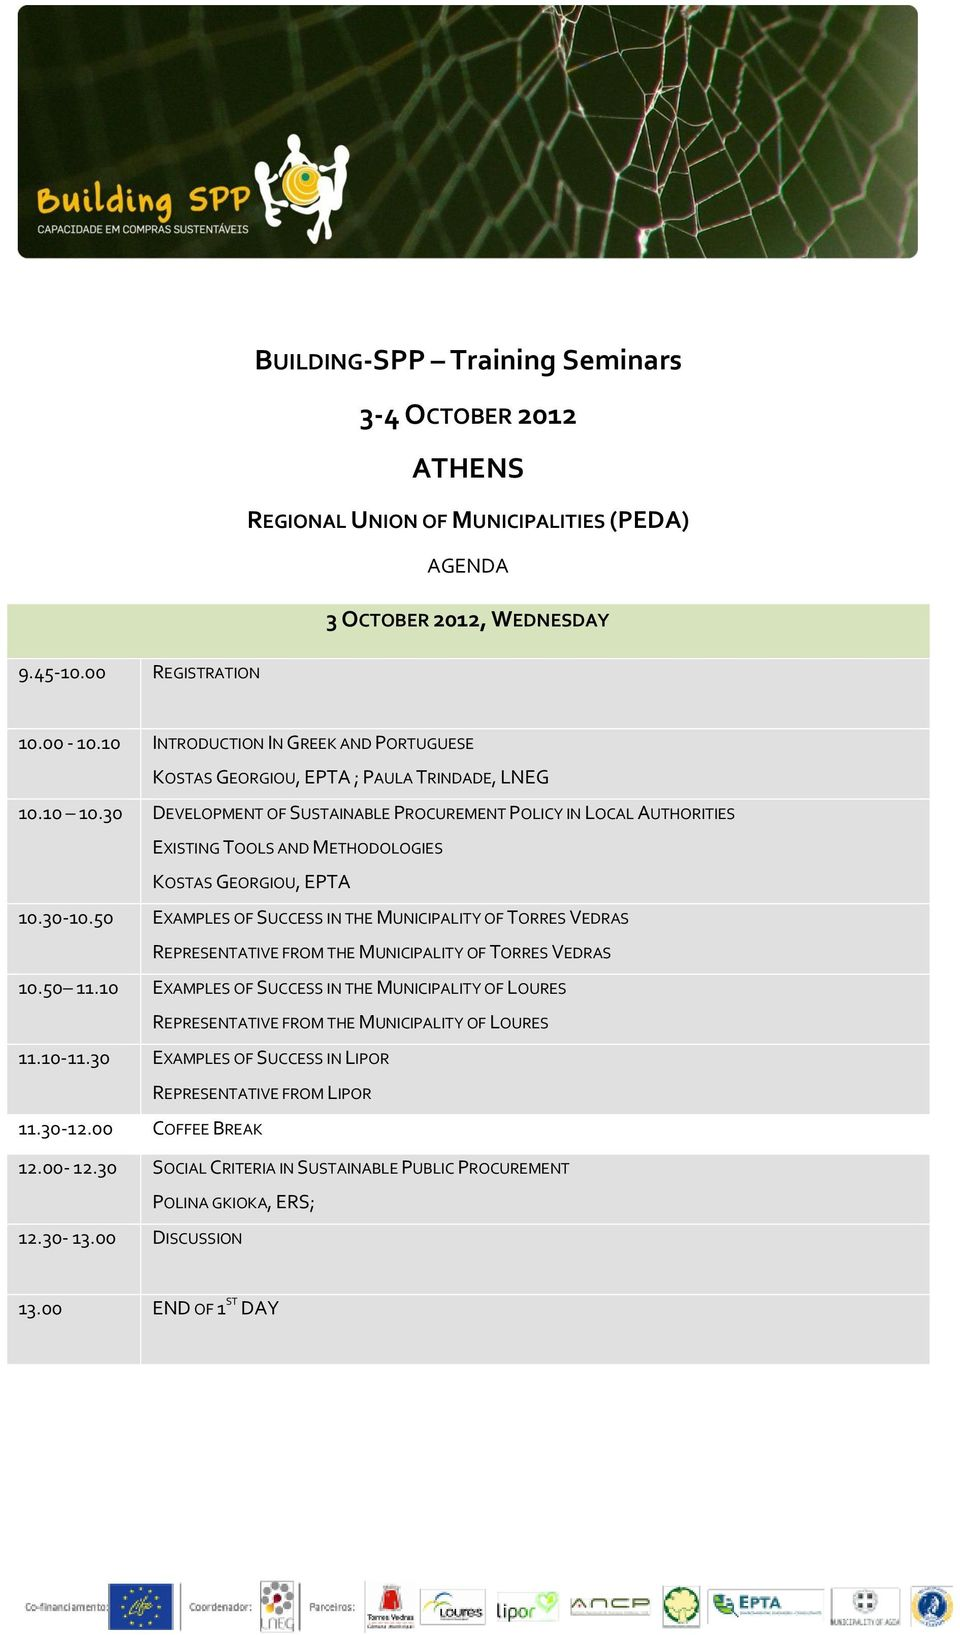 30 DEVELOPMENT OF SUSTAINABLE PROCUREMENT POLICY IN LOCAL AUTHORITIES EXISTING TOOLS AND METHODOLOGIES KOSTAS GEORGIOU, EPTA 10.30-10.